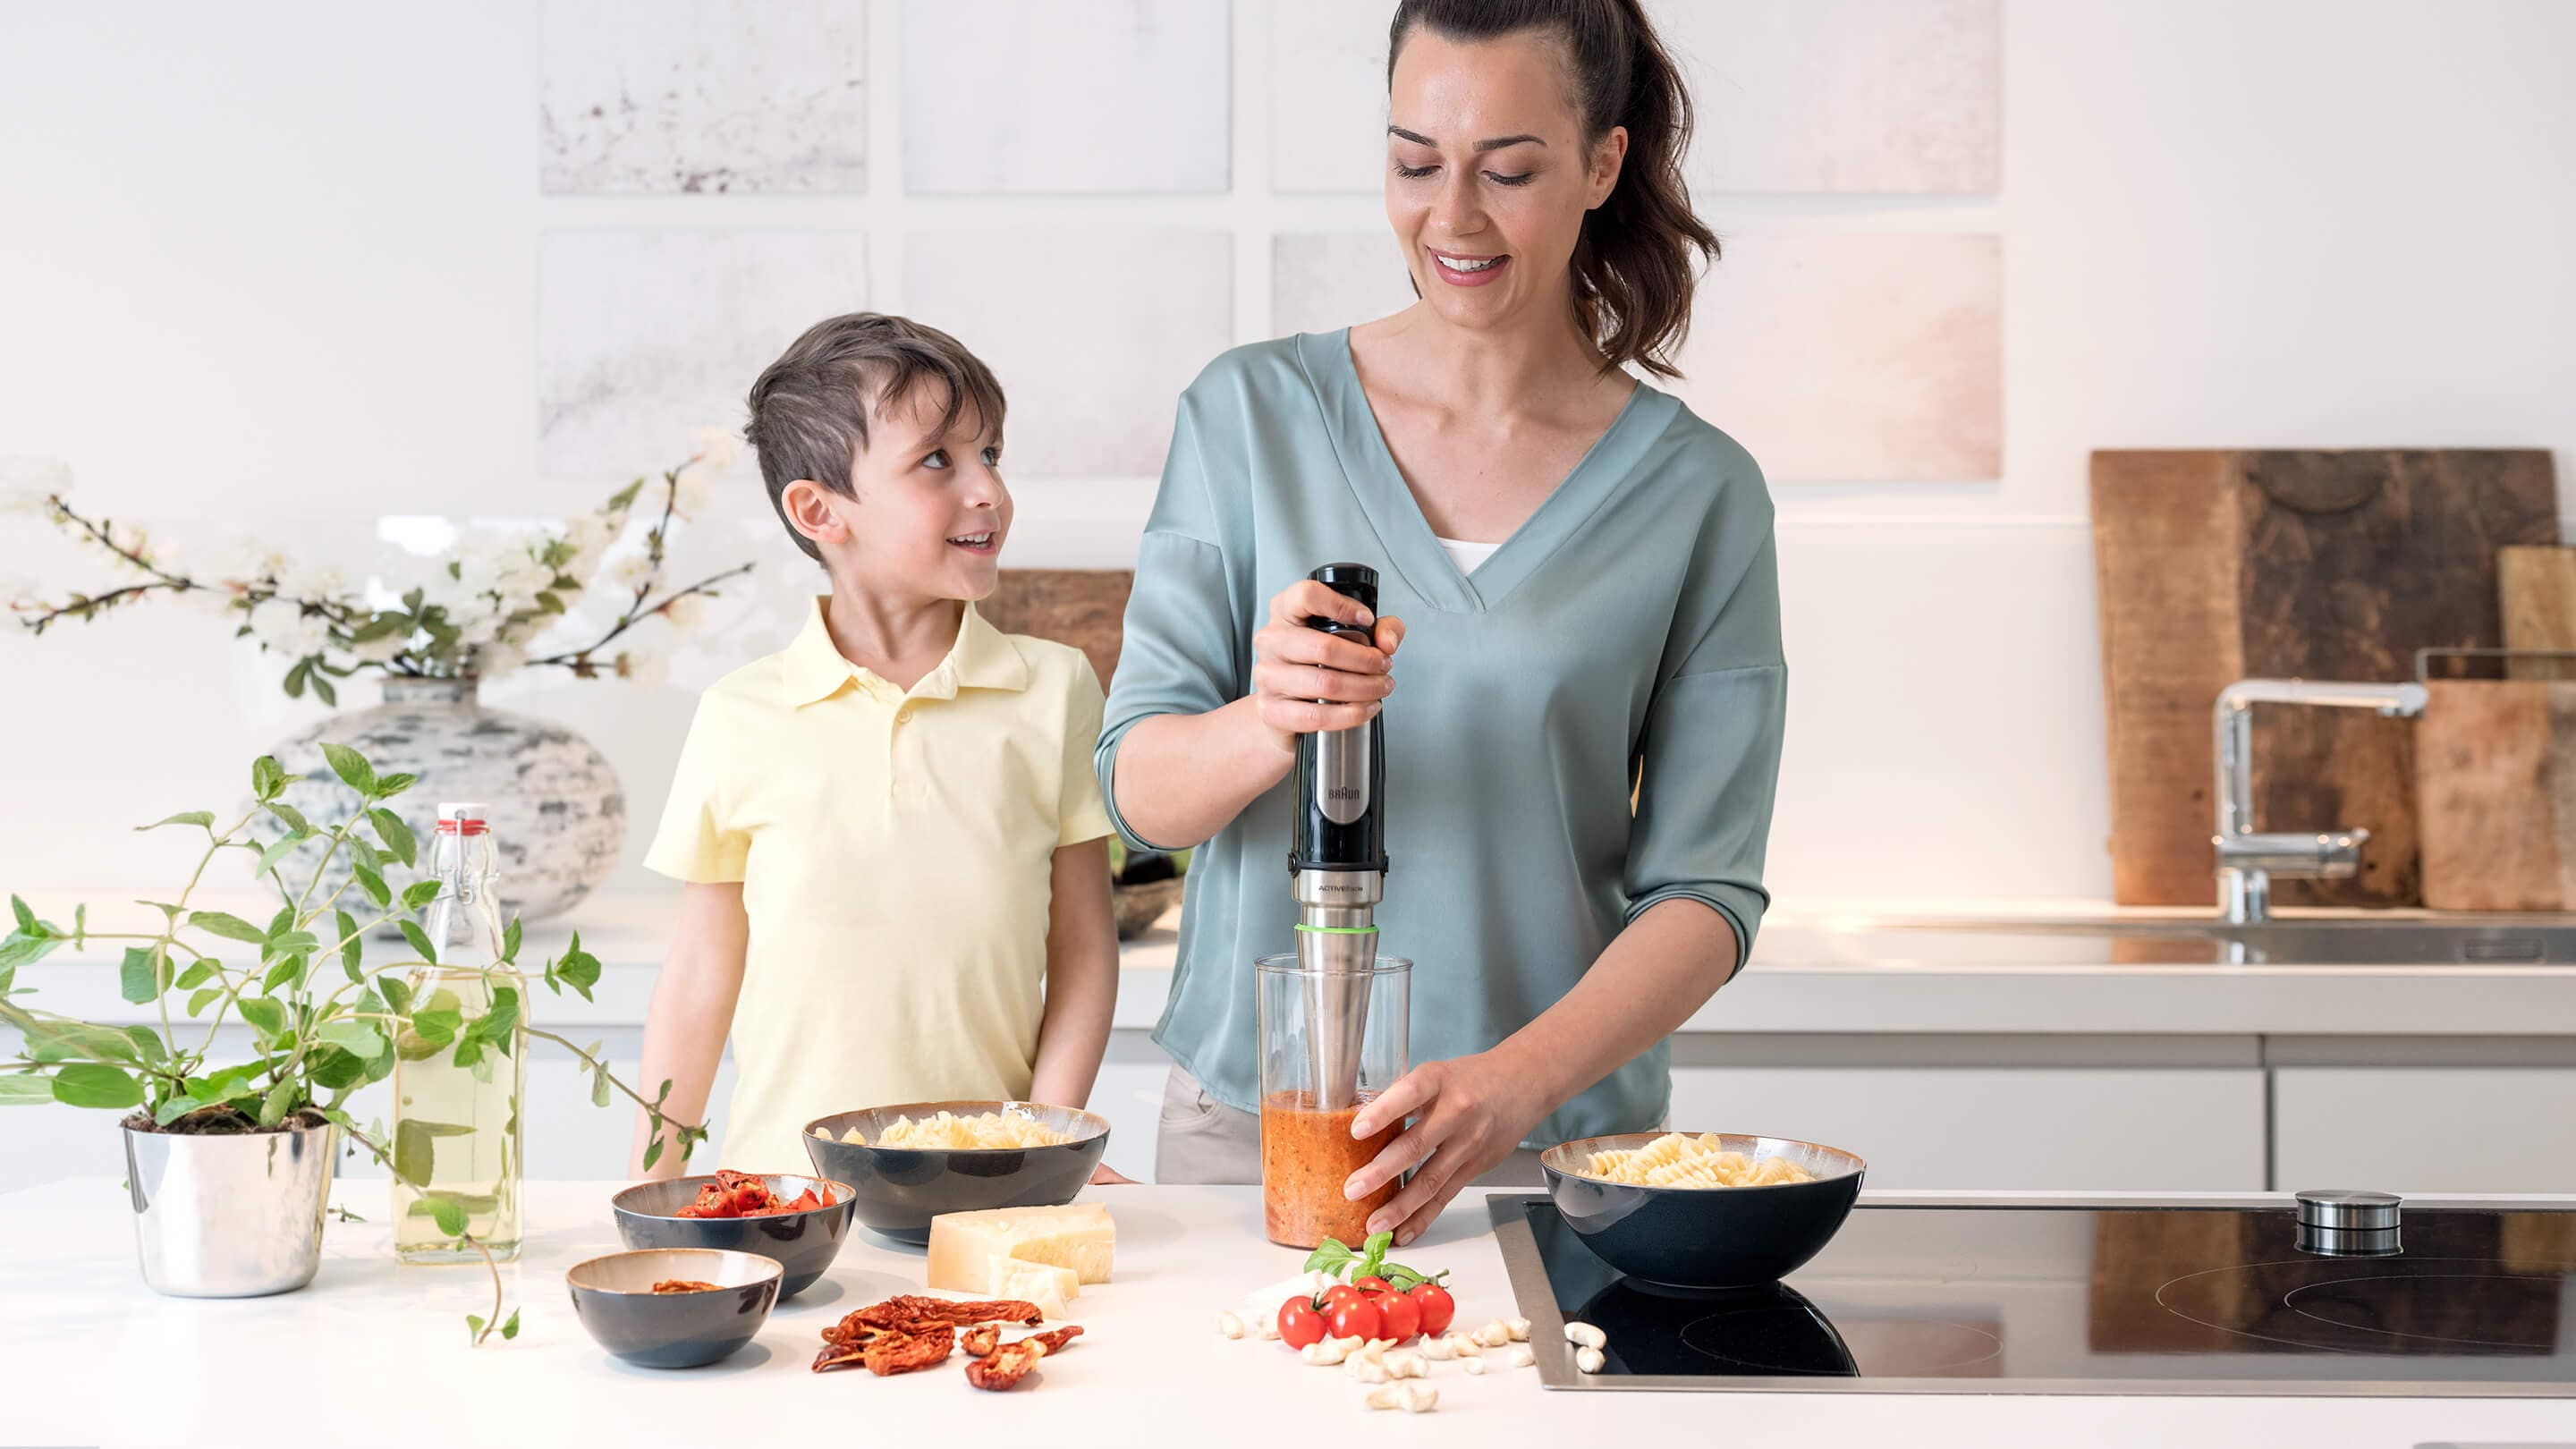 Braun MultiQuick 7 Hand blender in use